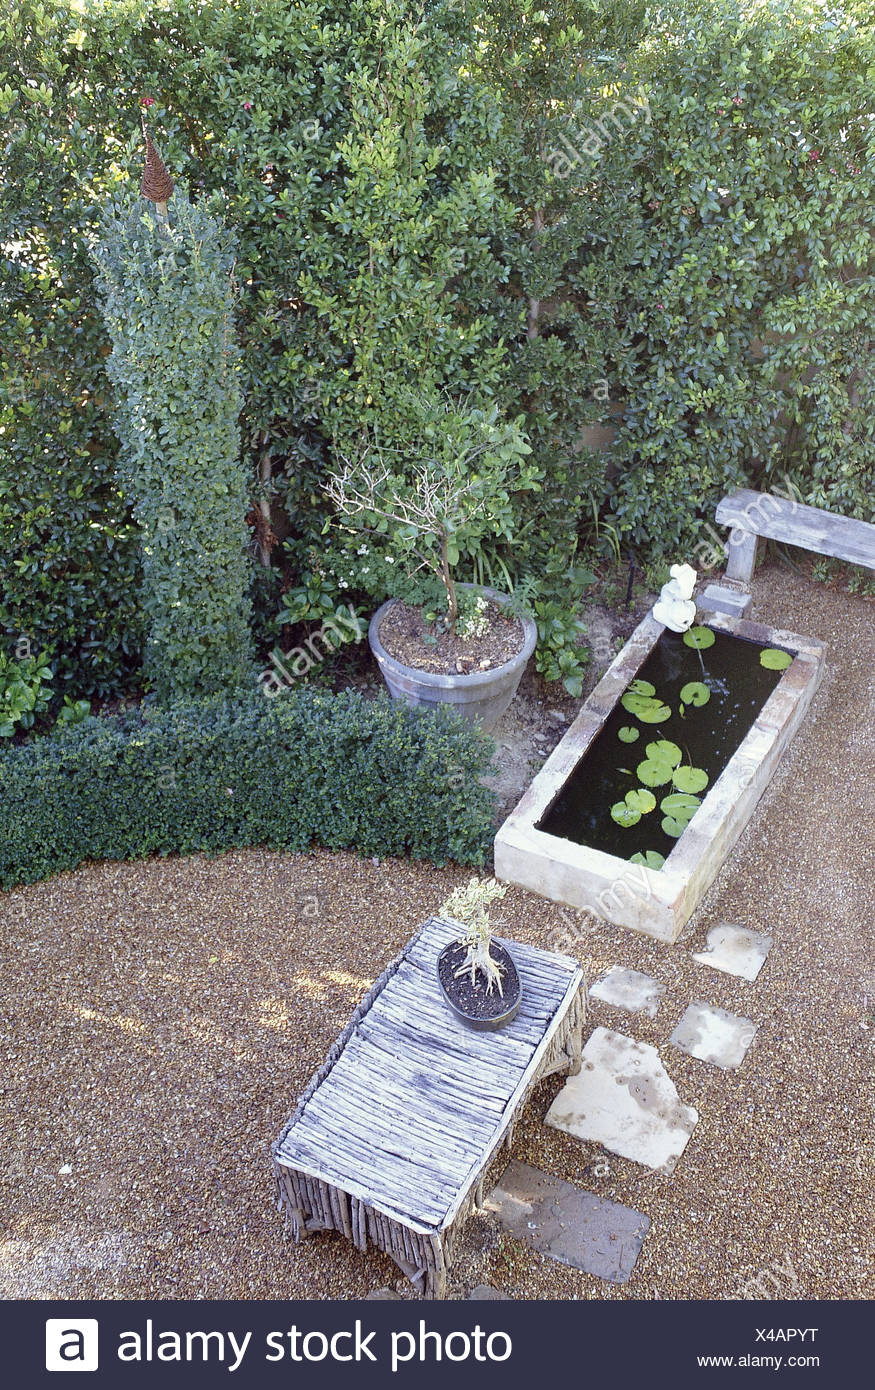 Small Gardens Hedge lined garden curved trimmed privet hedge and hedge trimmed in tall column round edge of gravel area paving - Stock Image